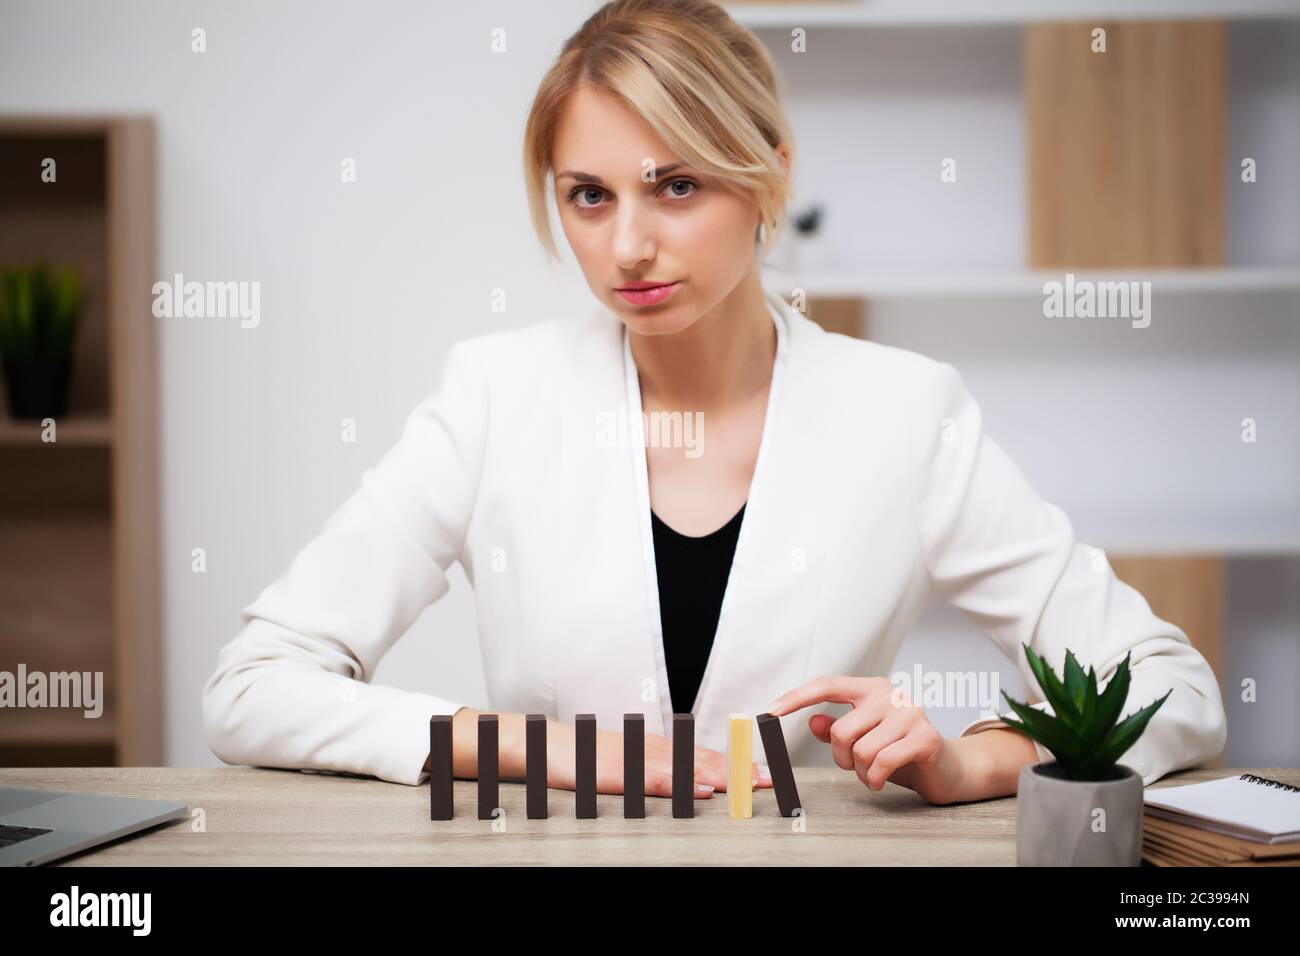 Business growth concept, beautiful young woman businesswoman builds company development plans Stock Photo